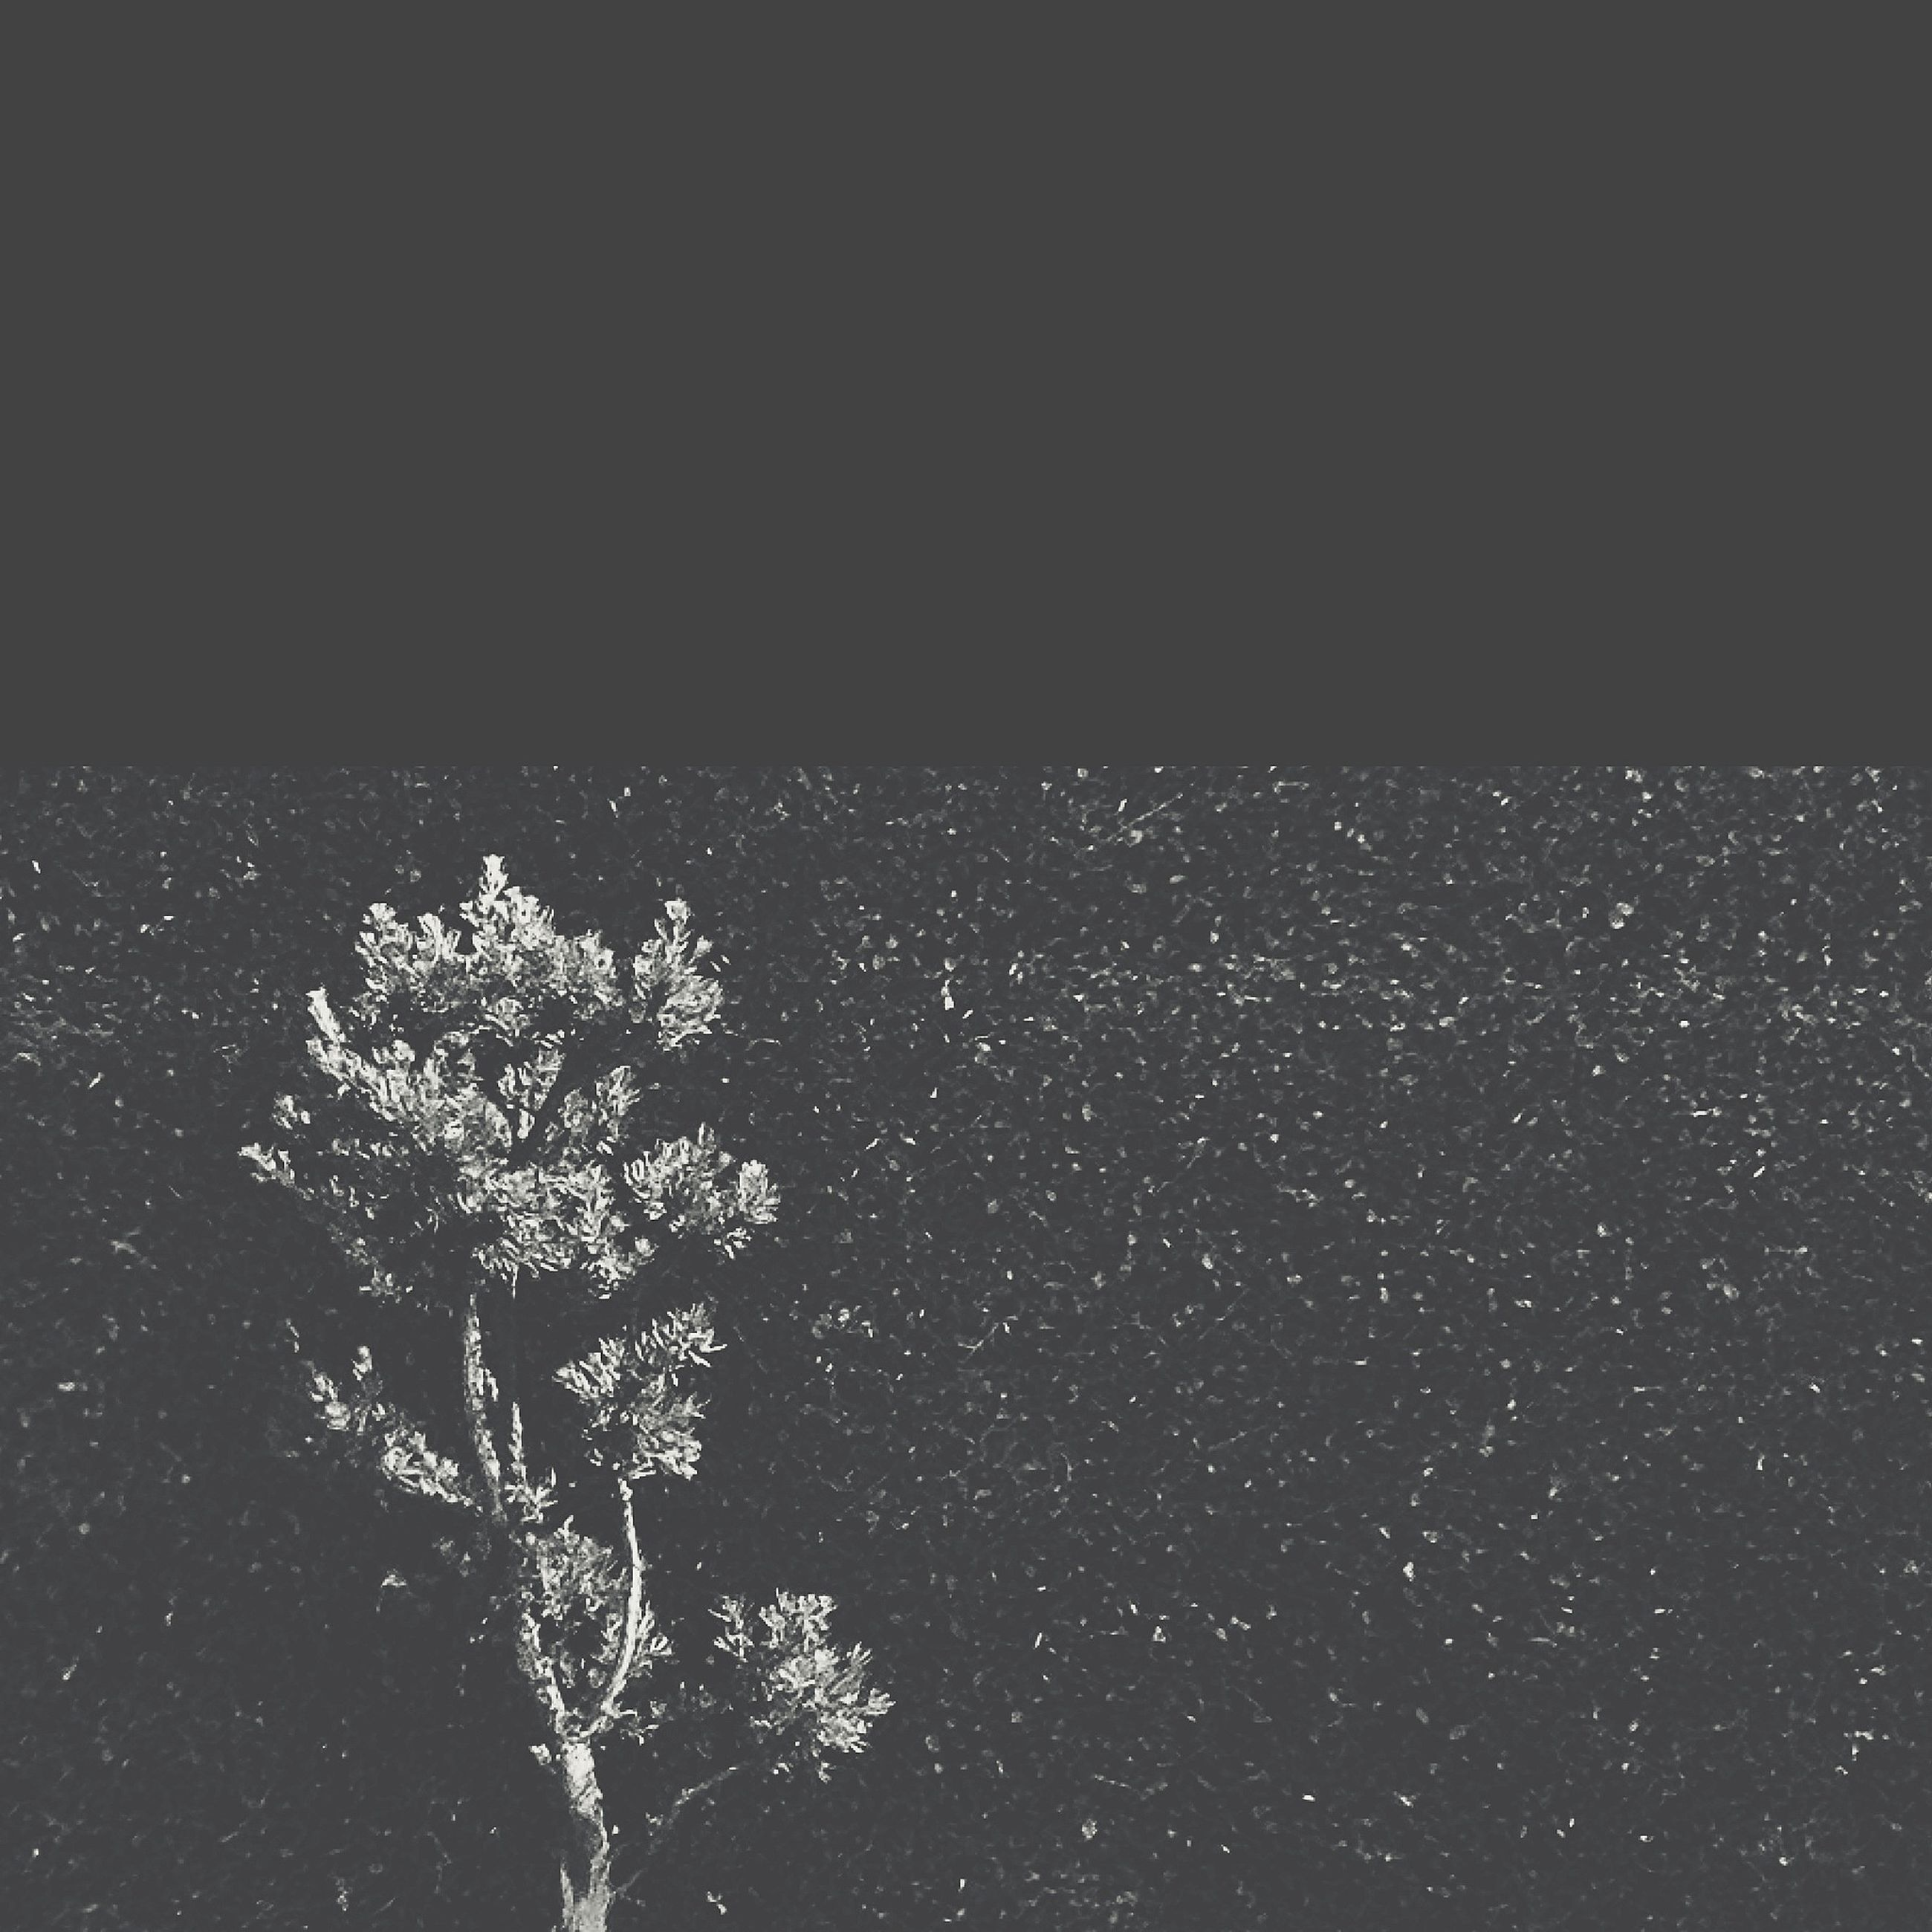 night, copy space, beauty in nature, nature, tree, clear sky, tranquility, growth, scenics, tranquil scene, dark, no people, sky, branch, outdoors, high angle view, idyllic, plant, low angle view